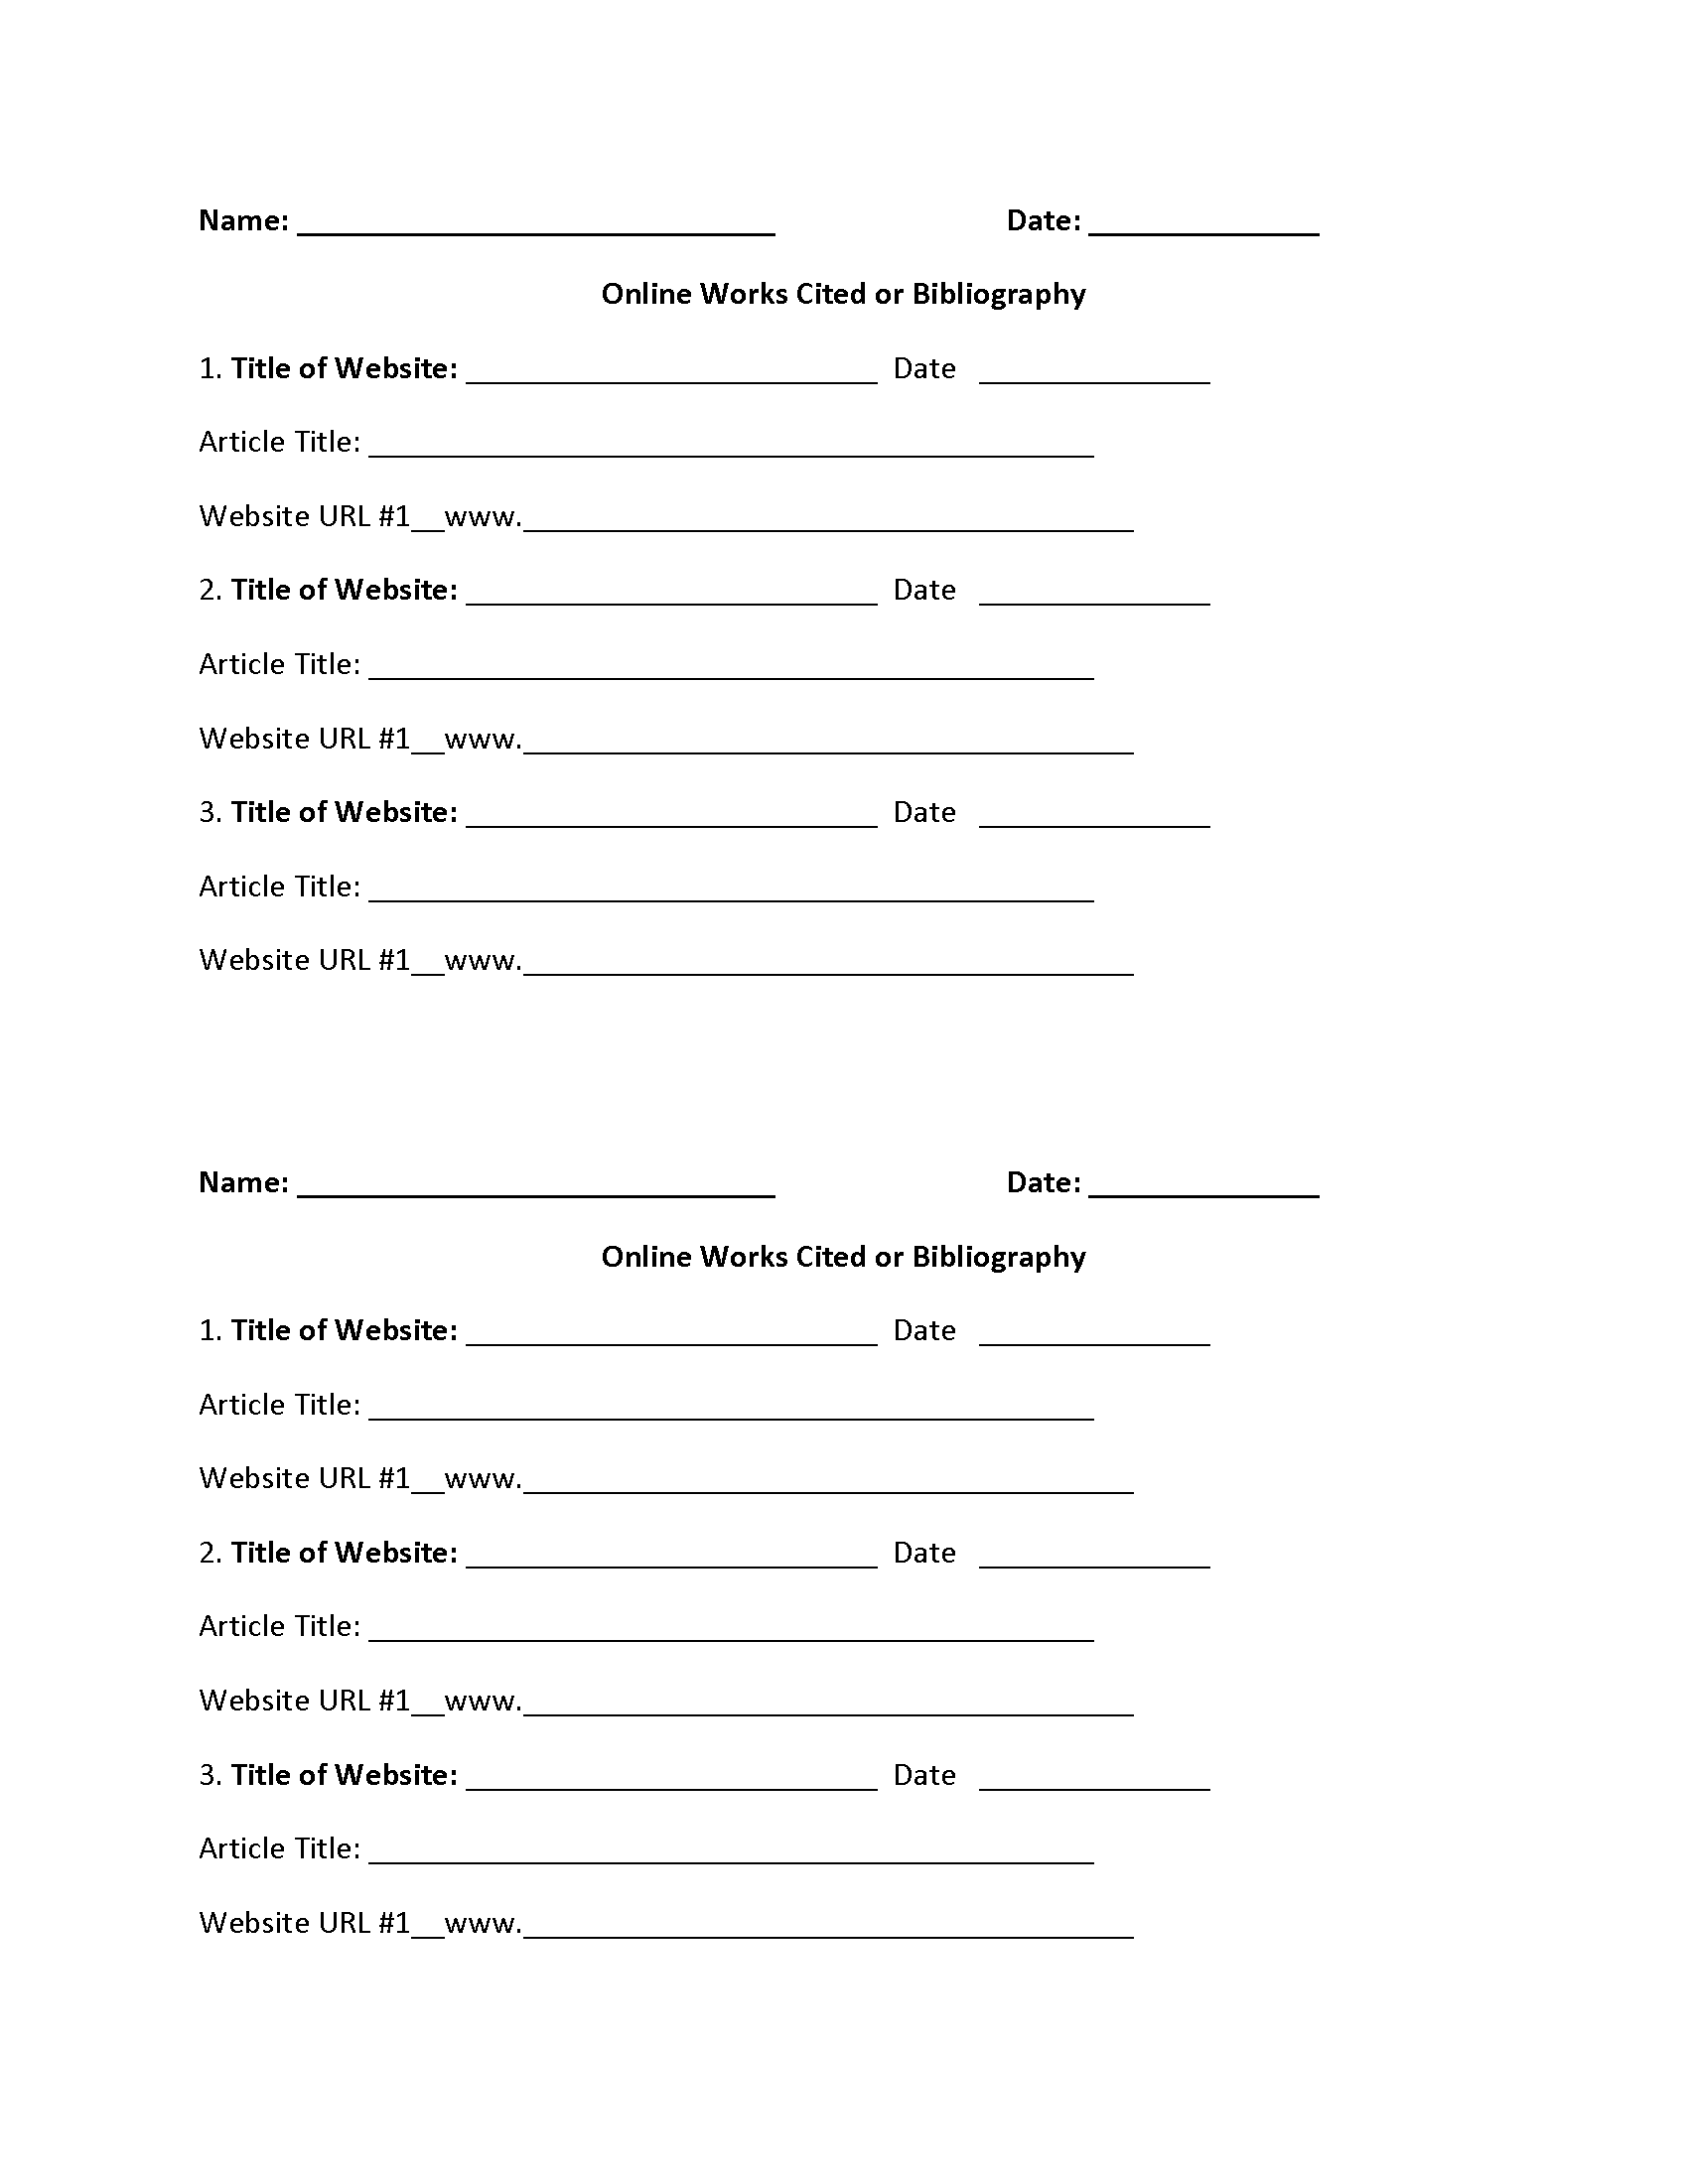 Online Article Works Cited Worksheet – Online Worksheets